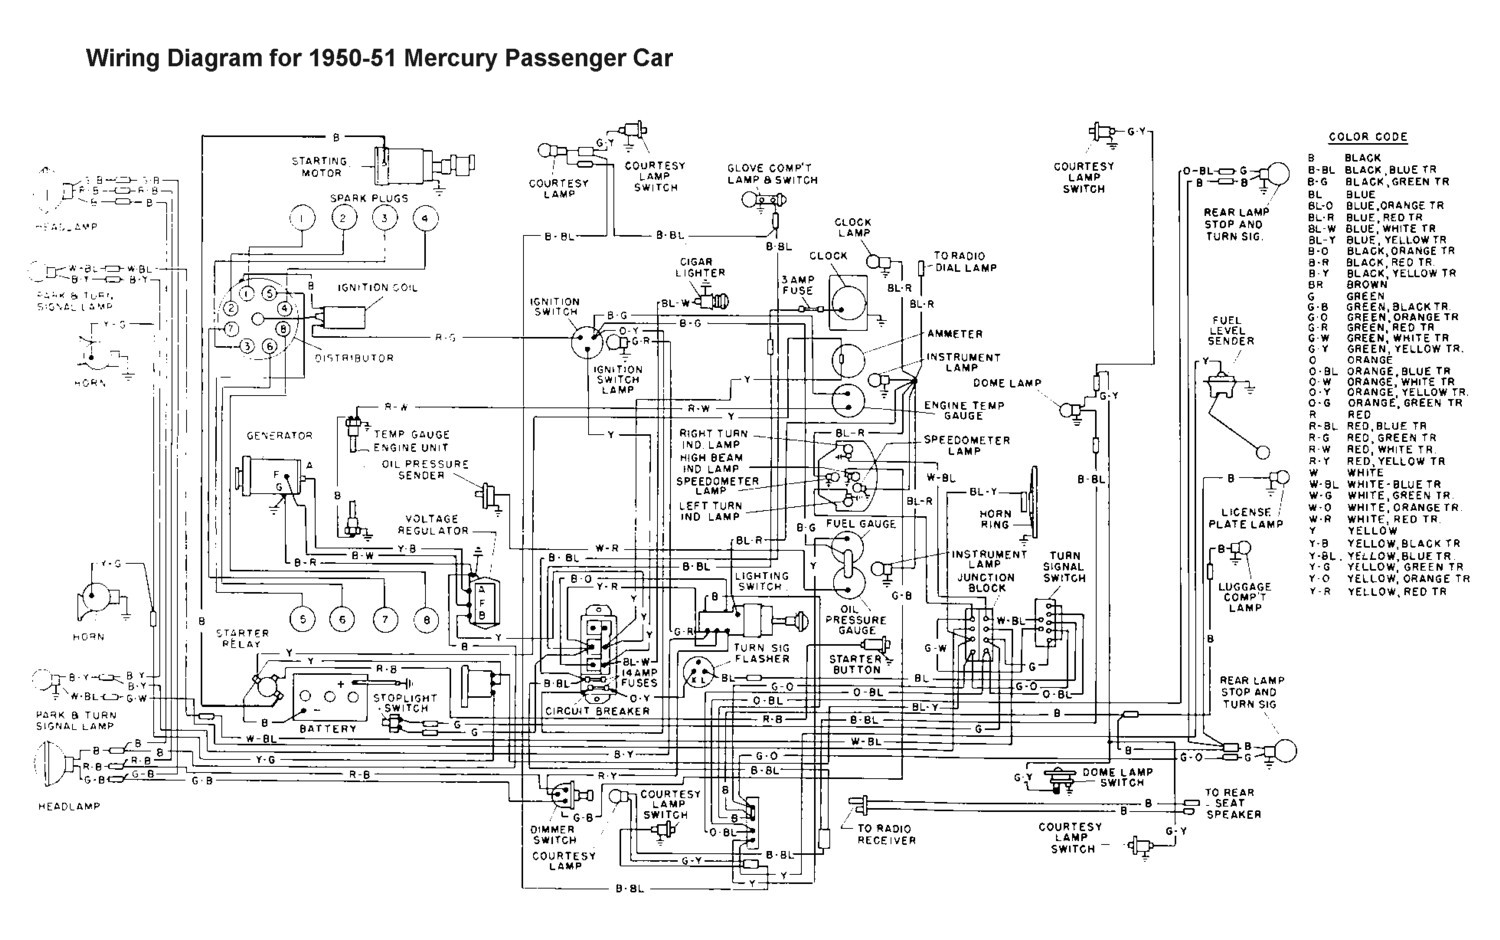 hight resolution of 1951 ford f2 wiring harness wiring diagram data 1956 mercury wiring harness 1951 ford wiring harness